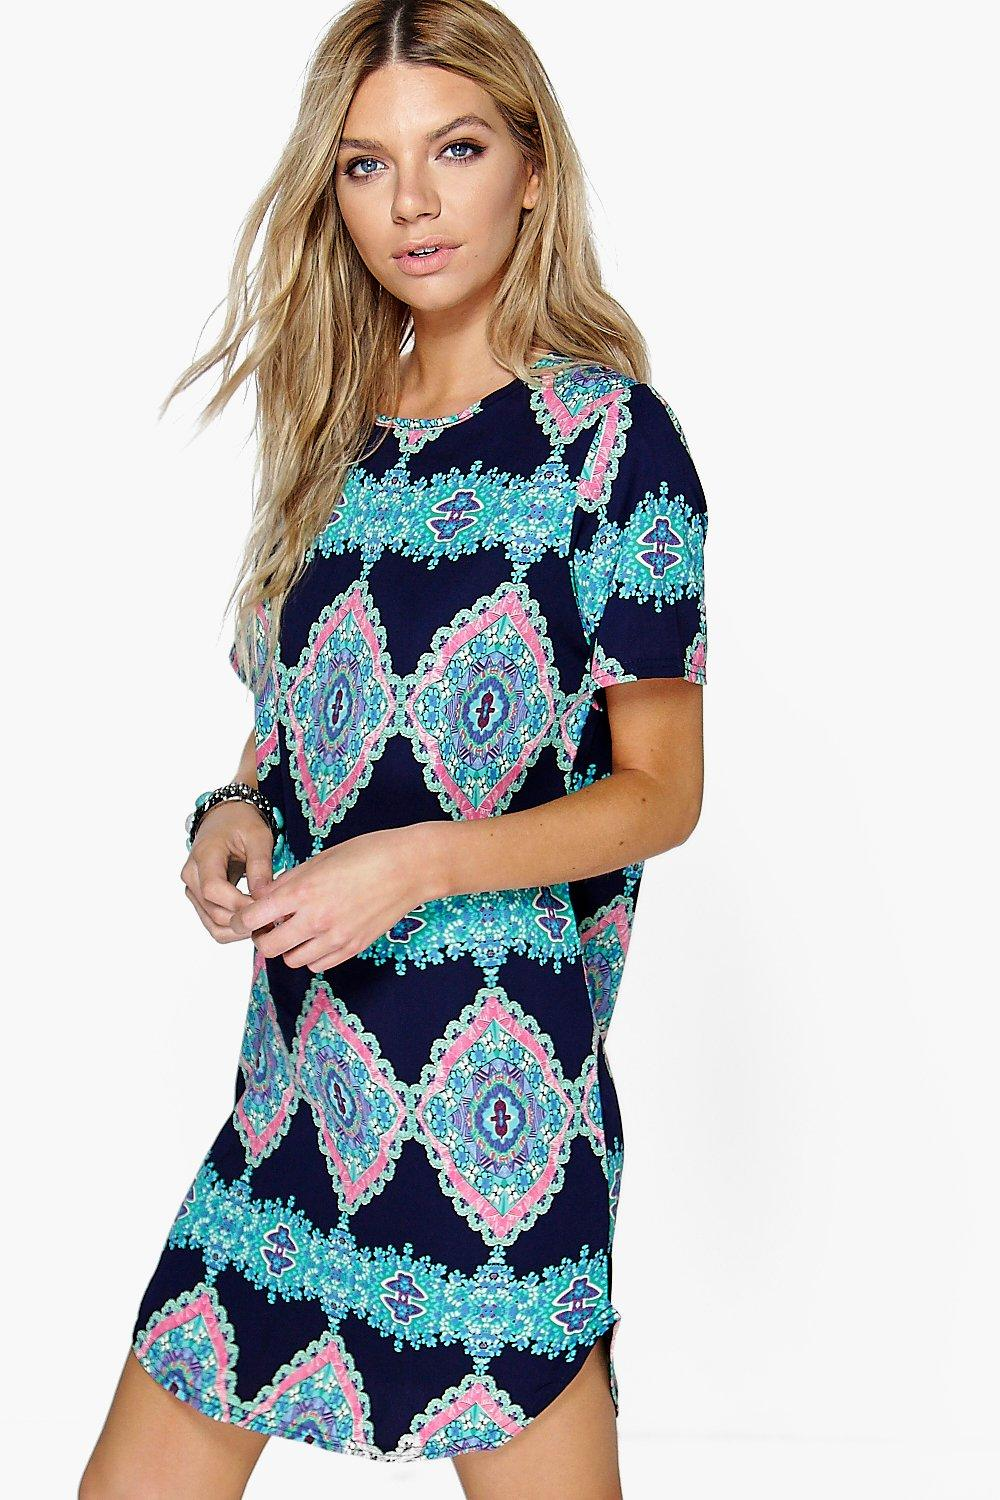 Emma Sleeveless Printed Shift Dress